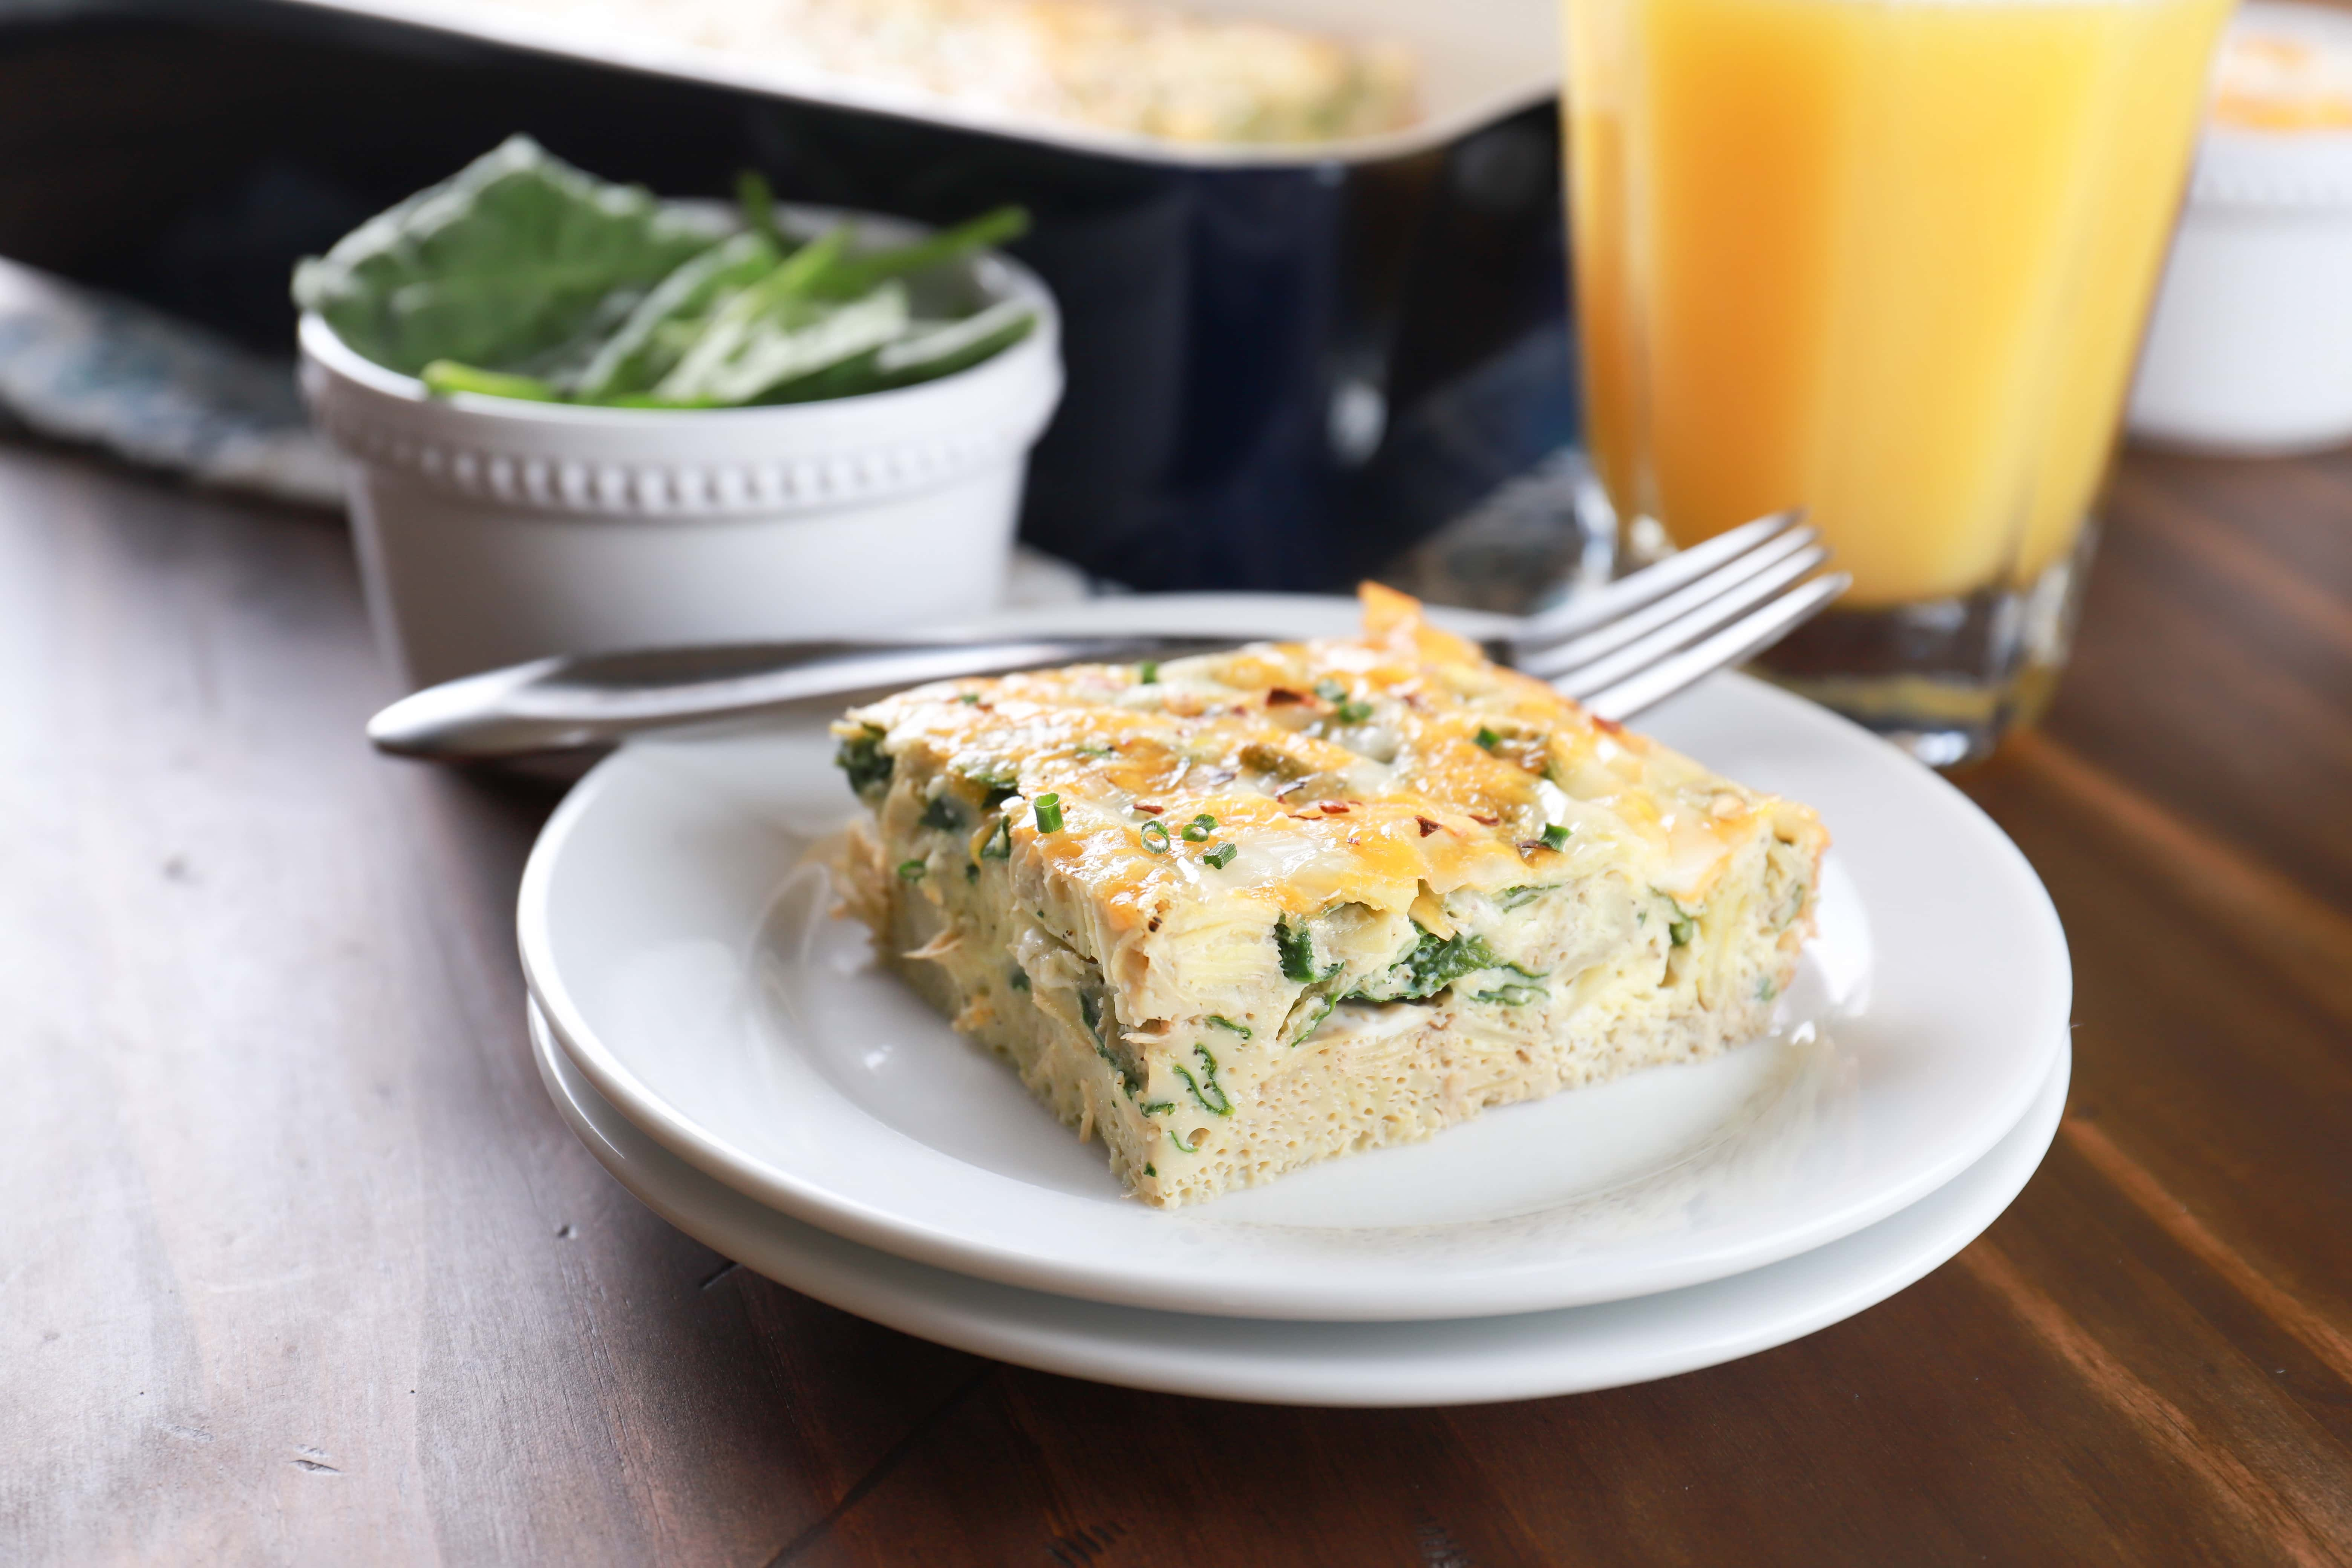 Piece of spinach artichoke egg bake on a white plate with a pan of egg bake in the background. Recipe for egg bake from A Kitchen Addiction